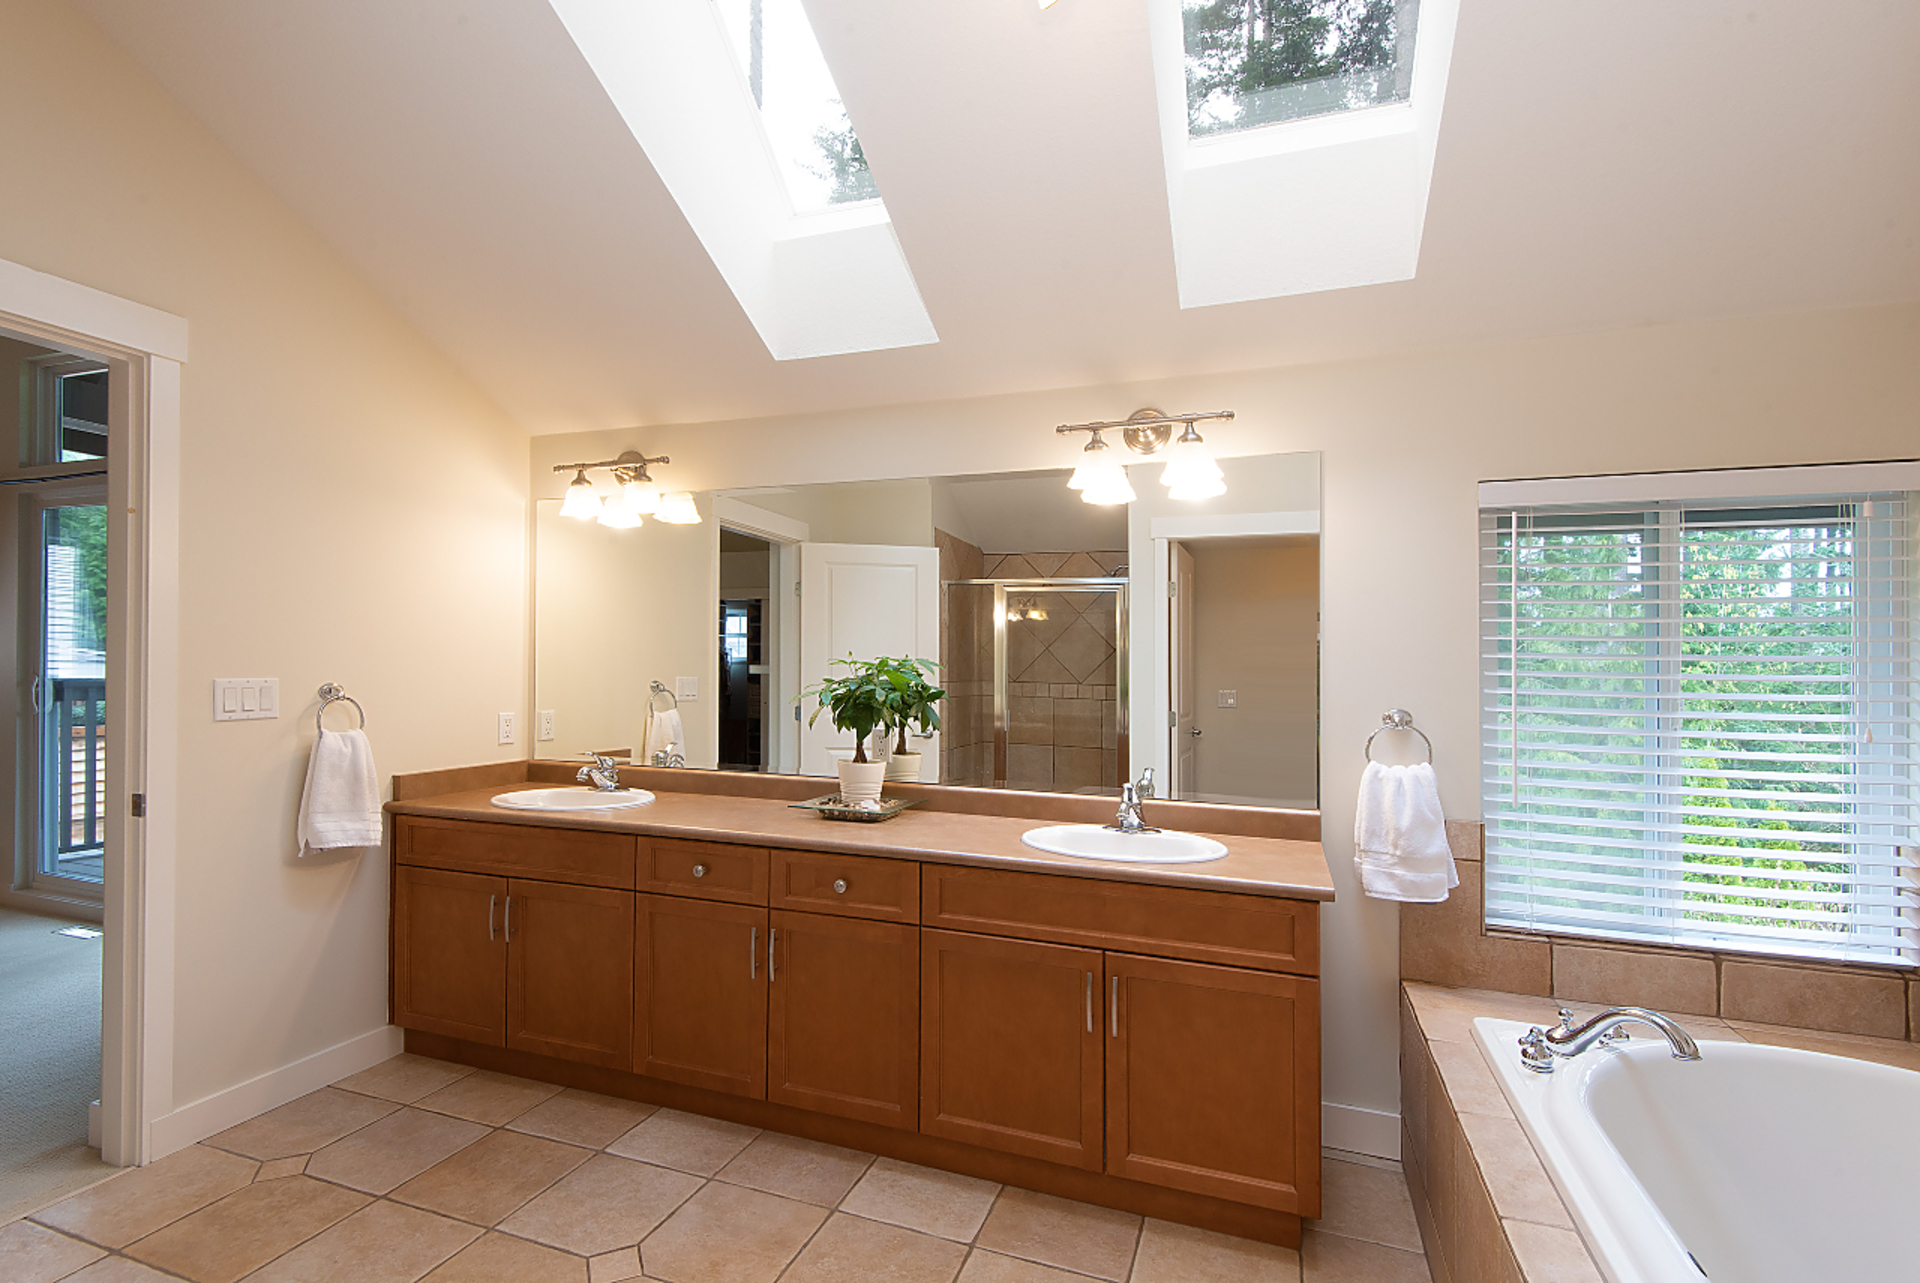 035 at 42 Cliffwood Drive, Heritage Woods PM, Port Moody